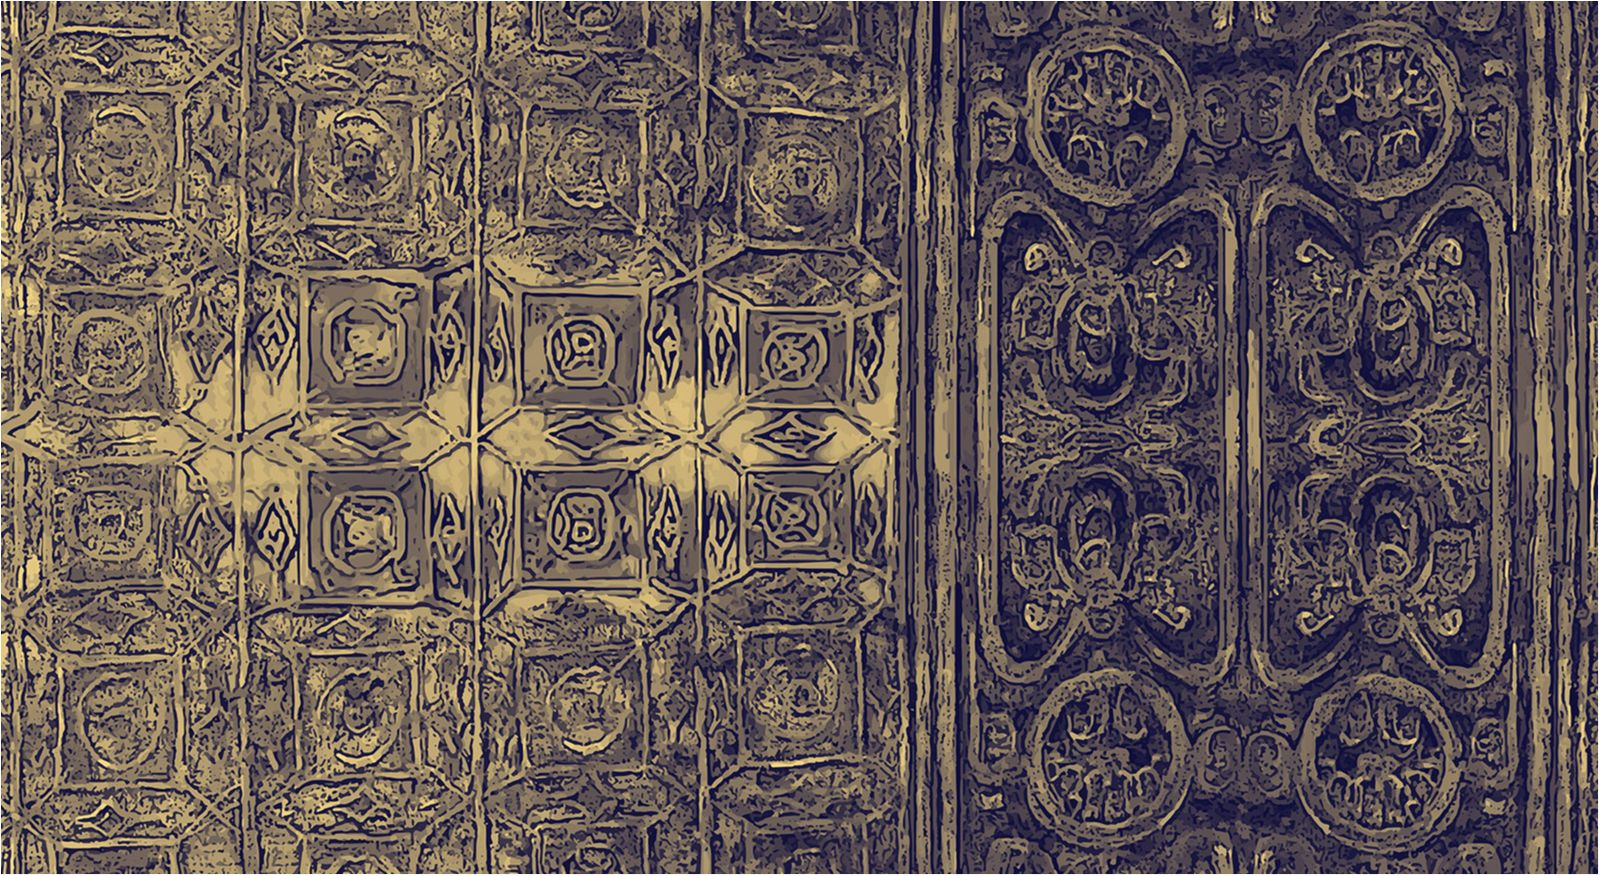 ORIENT GOLD 001 CONTEMPORARY WALLPAPER 2019 1600x876